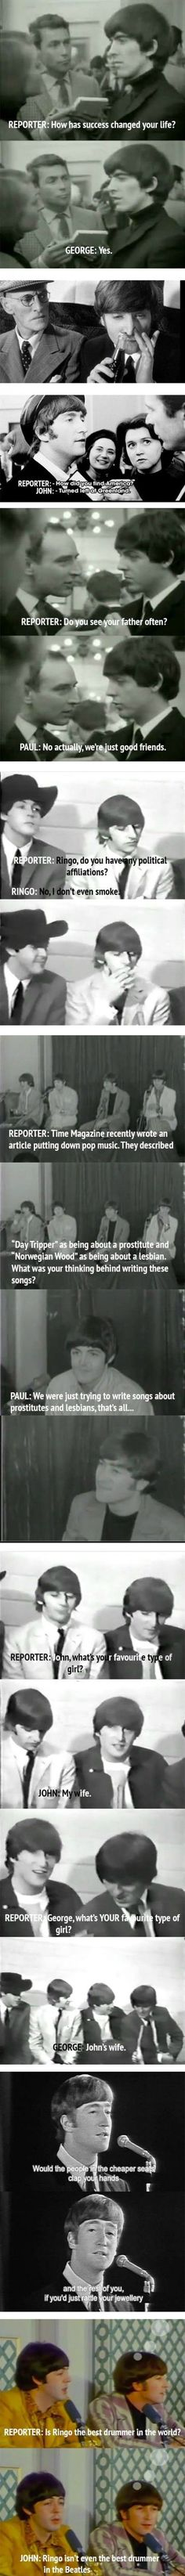 Why I adore the Beatles. music, stuff, funny guys, funni, one direction, humor, beatl, quot, thing